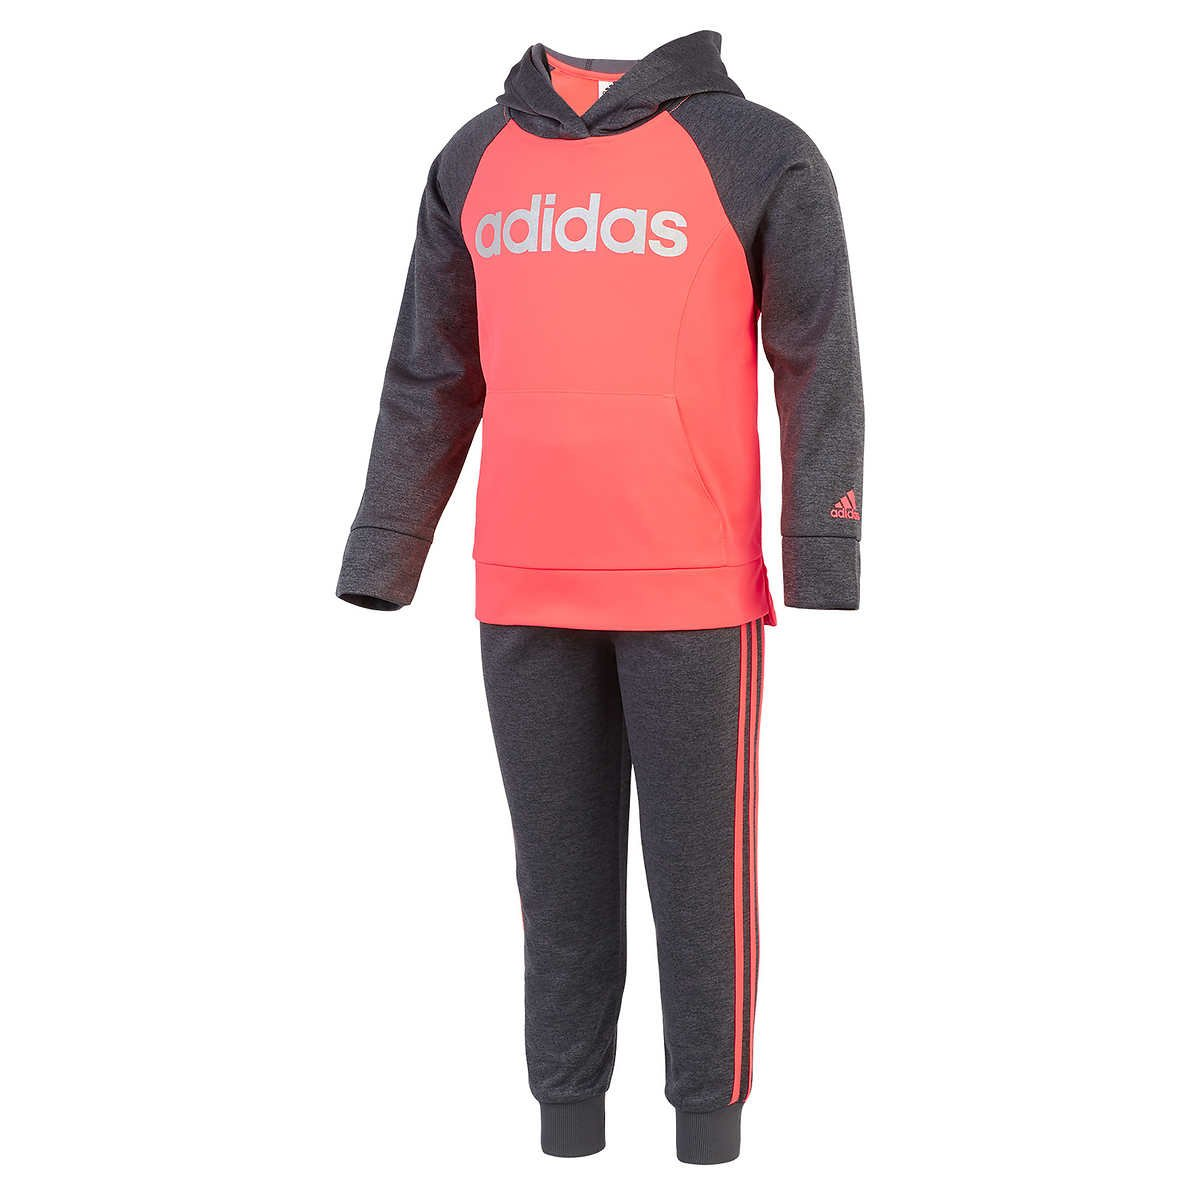 adidas Girls' Tricot Zip Jacket and Pant Set AG4984